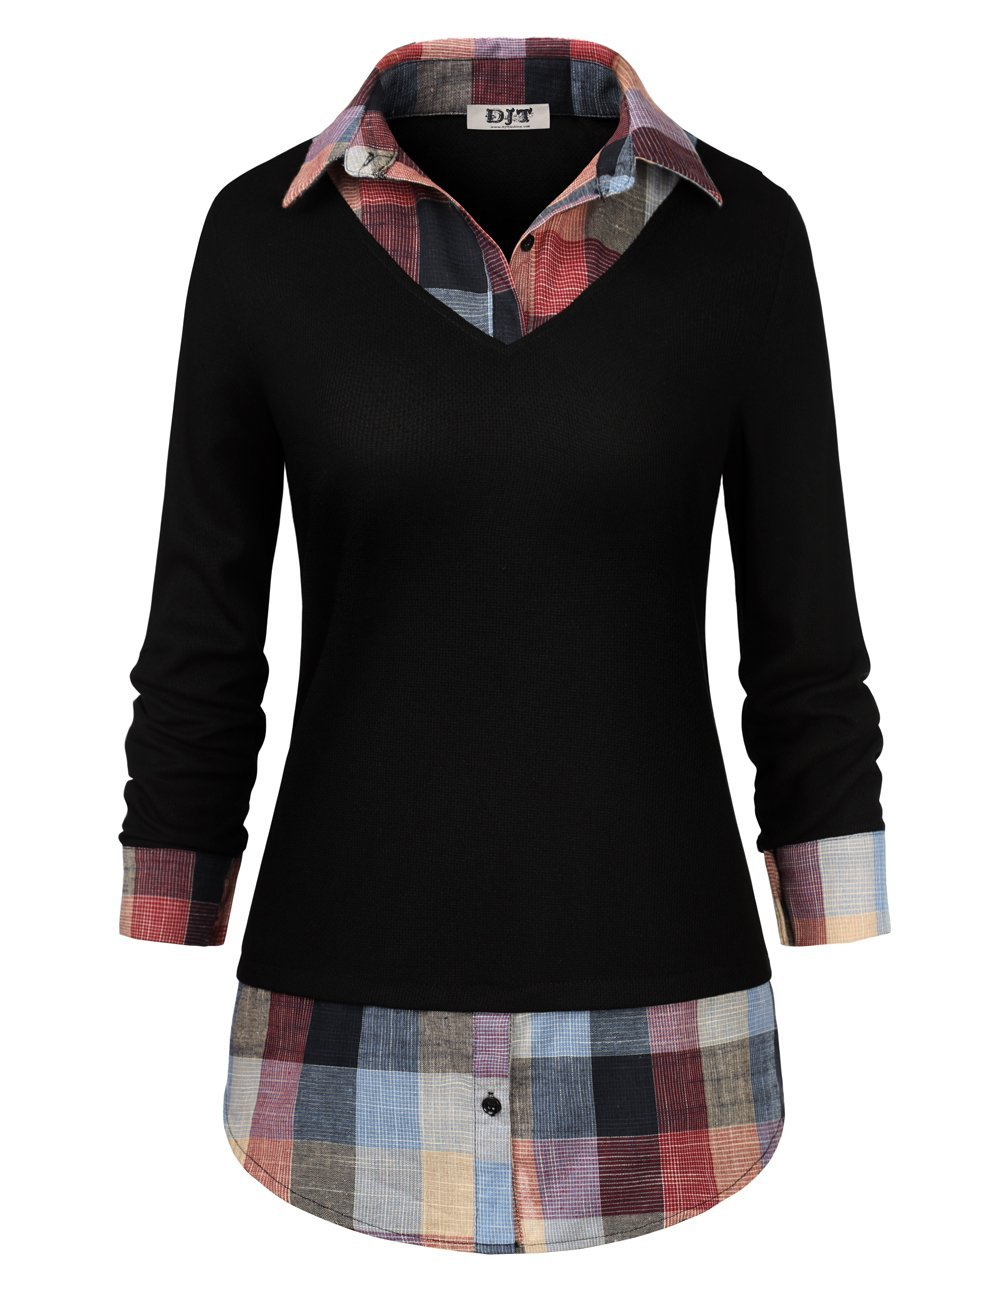 Women's Plaid Layered T-Shirt, DJT Curved Hem Buttons Pullover Tops 3/4 Sleeve Sweatshirt T-Shirt Top XXL Black